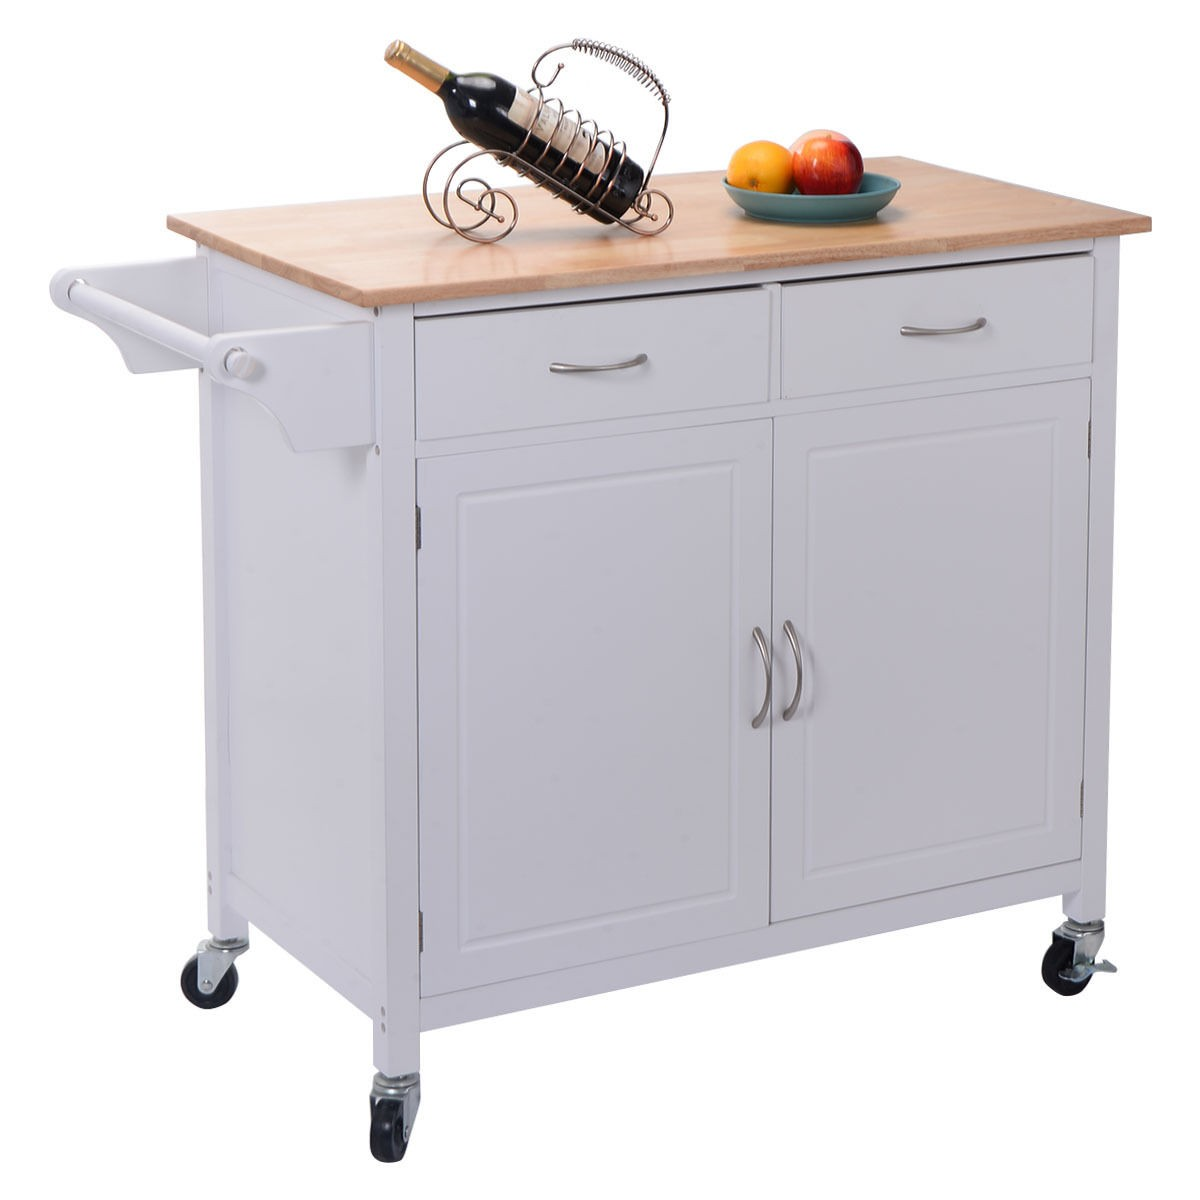 Us Portable Kitchen Rolling Cart Wood Island Serving Utility W Cabinet Drawer